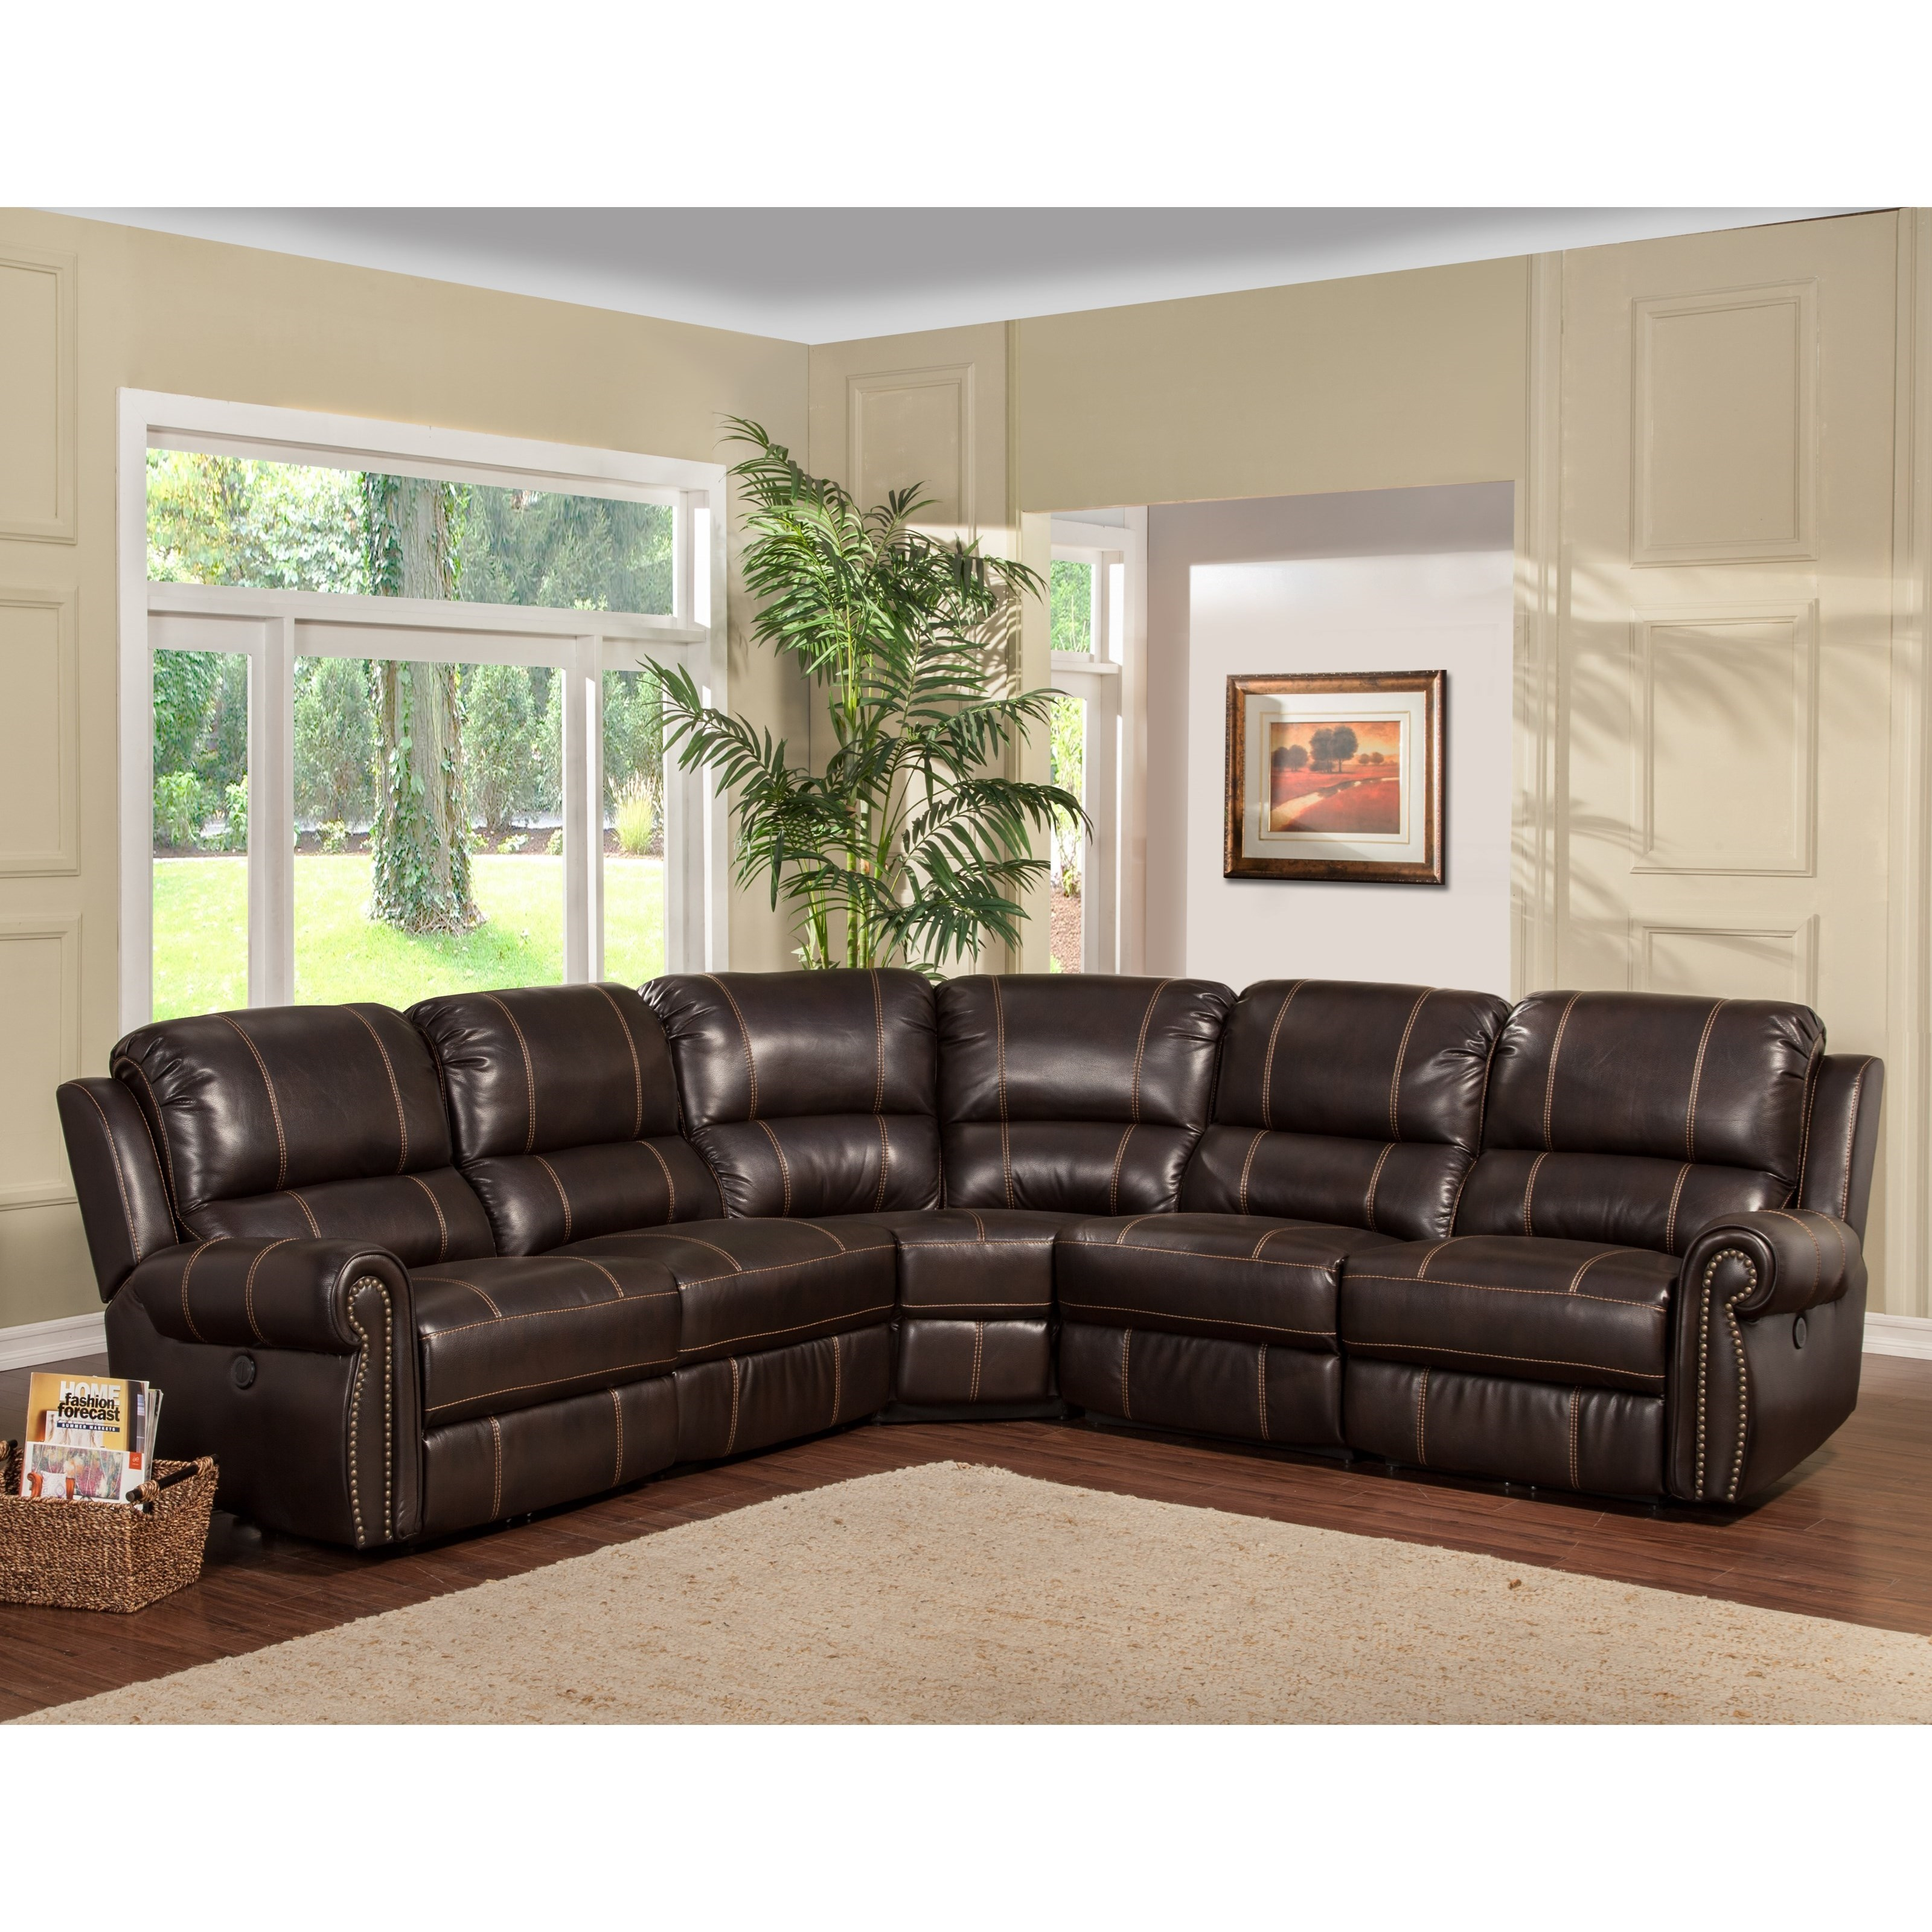 Sectional Sofa Living Room Layout Parker Living Webber Traditional Sectional Sofa With Reclining Arm